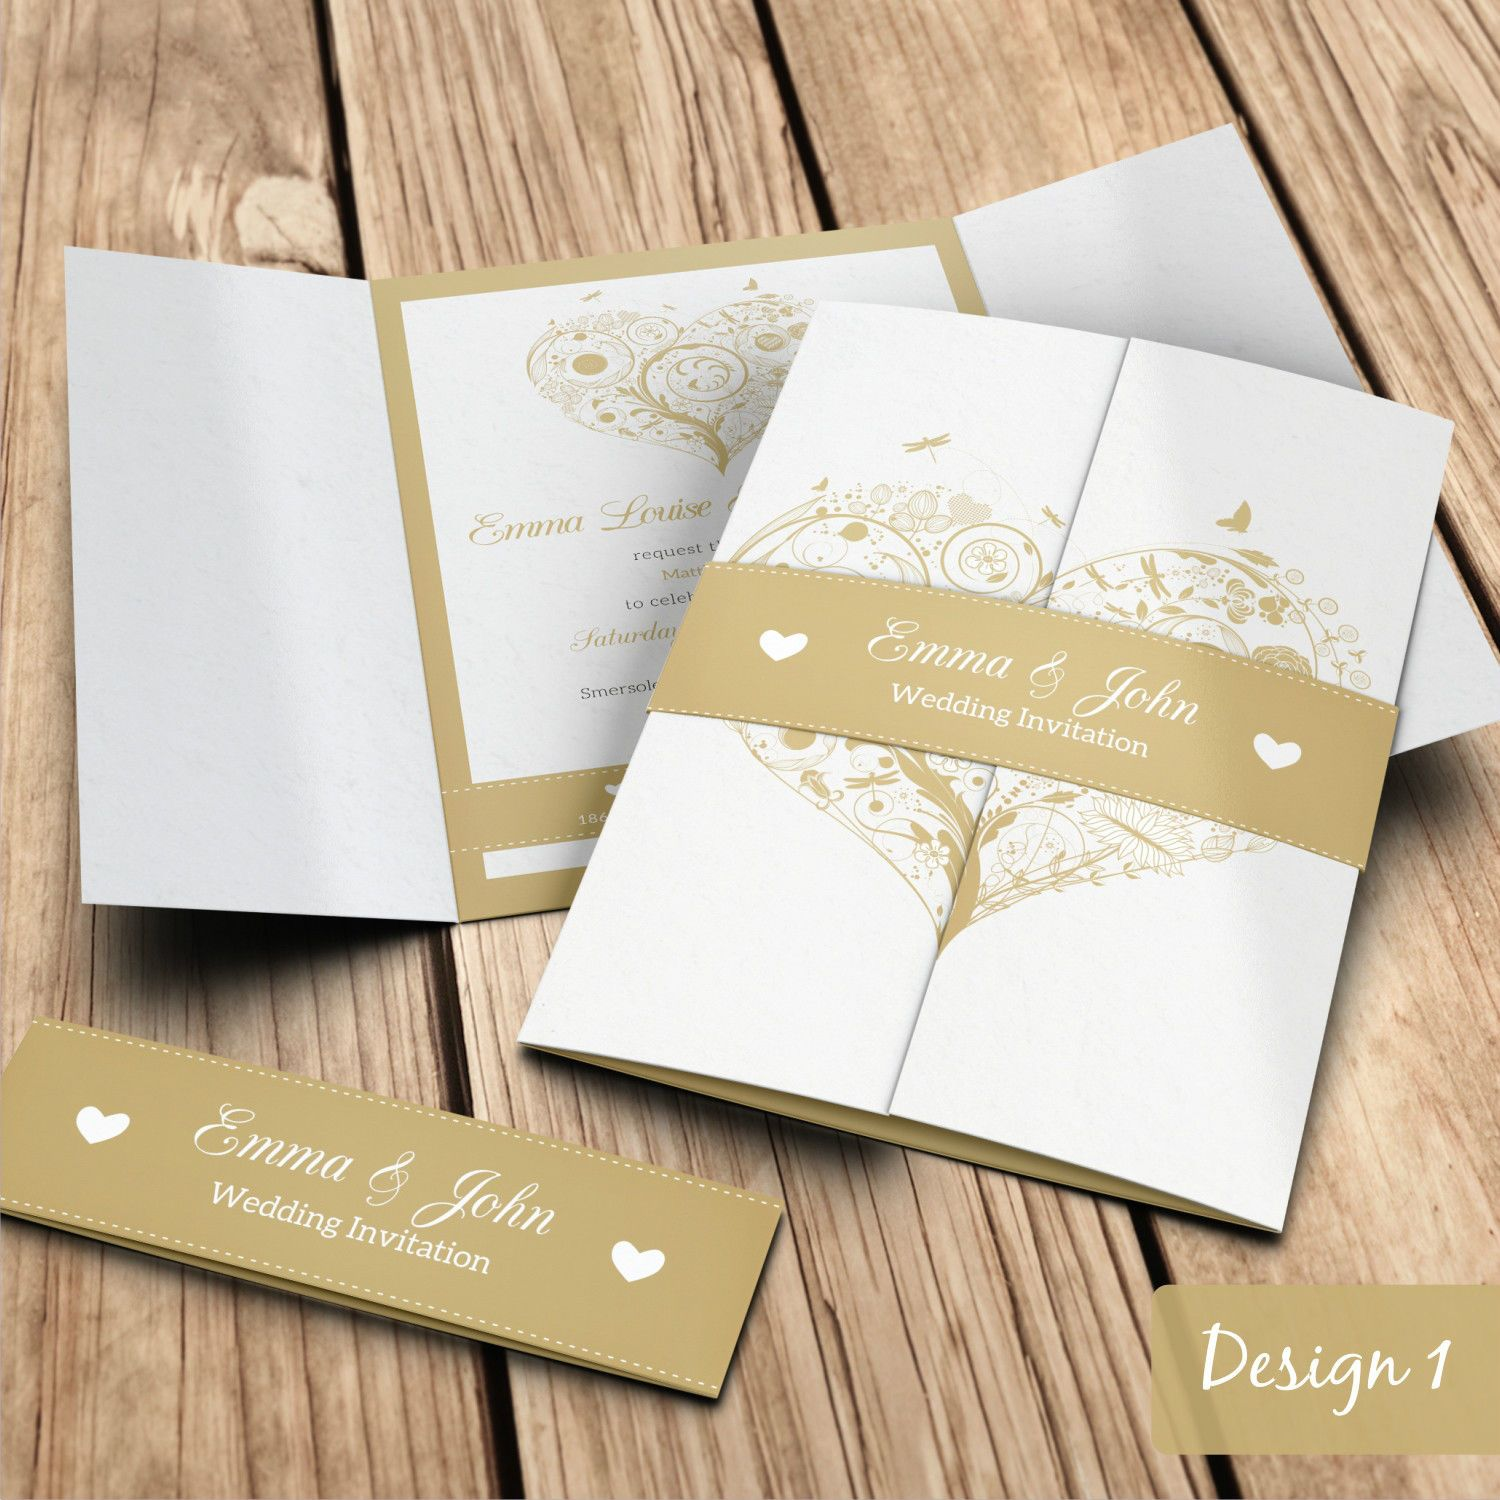 Personalised Gatefold Wedding Day Evening Invitations With Envelopes Ebay Invitations Wedding Invitations Handmade Wedding Invitations